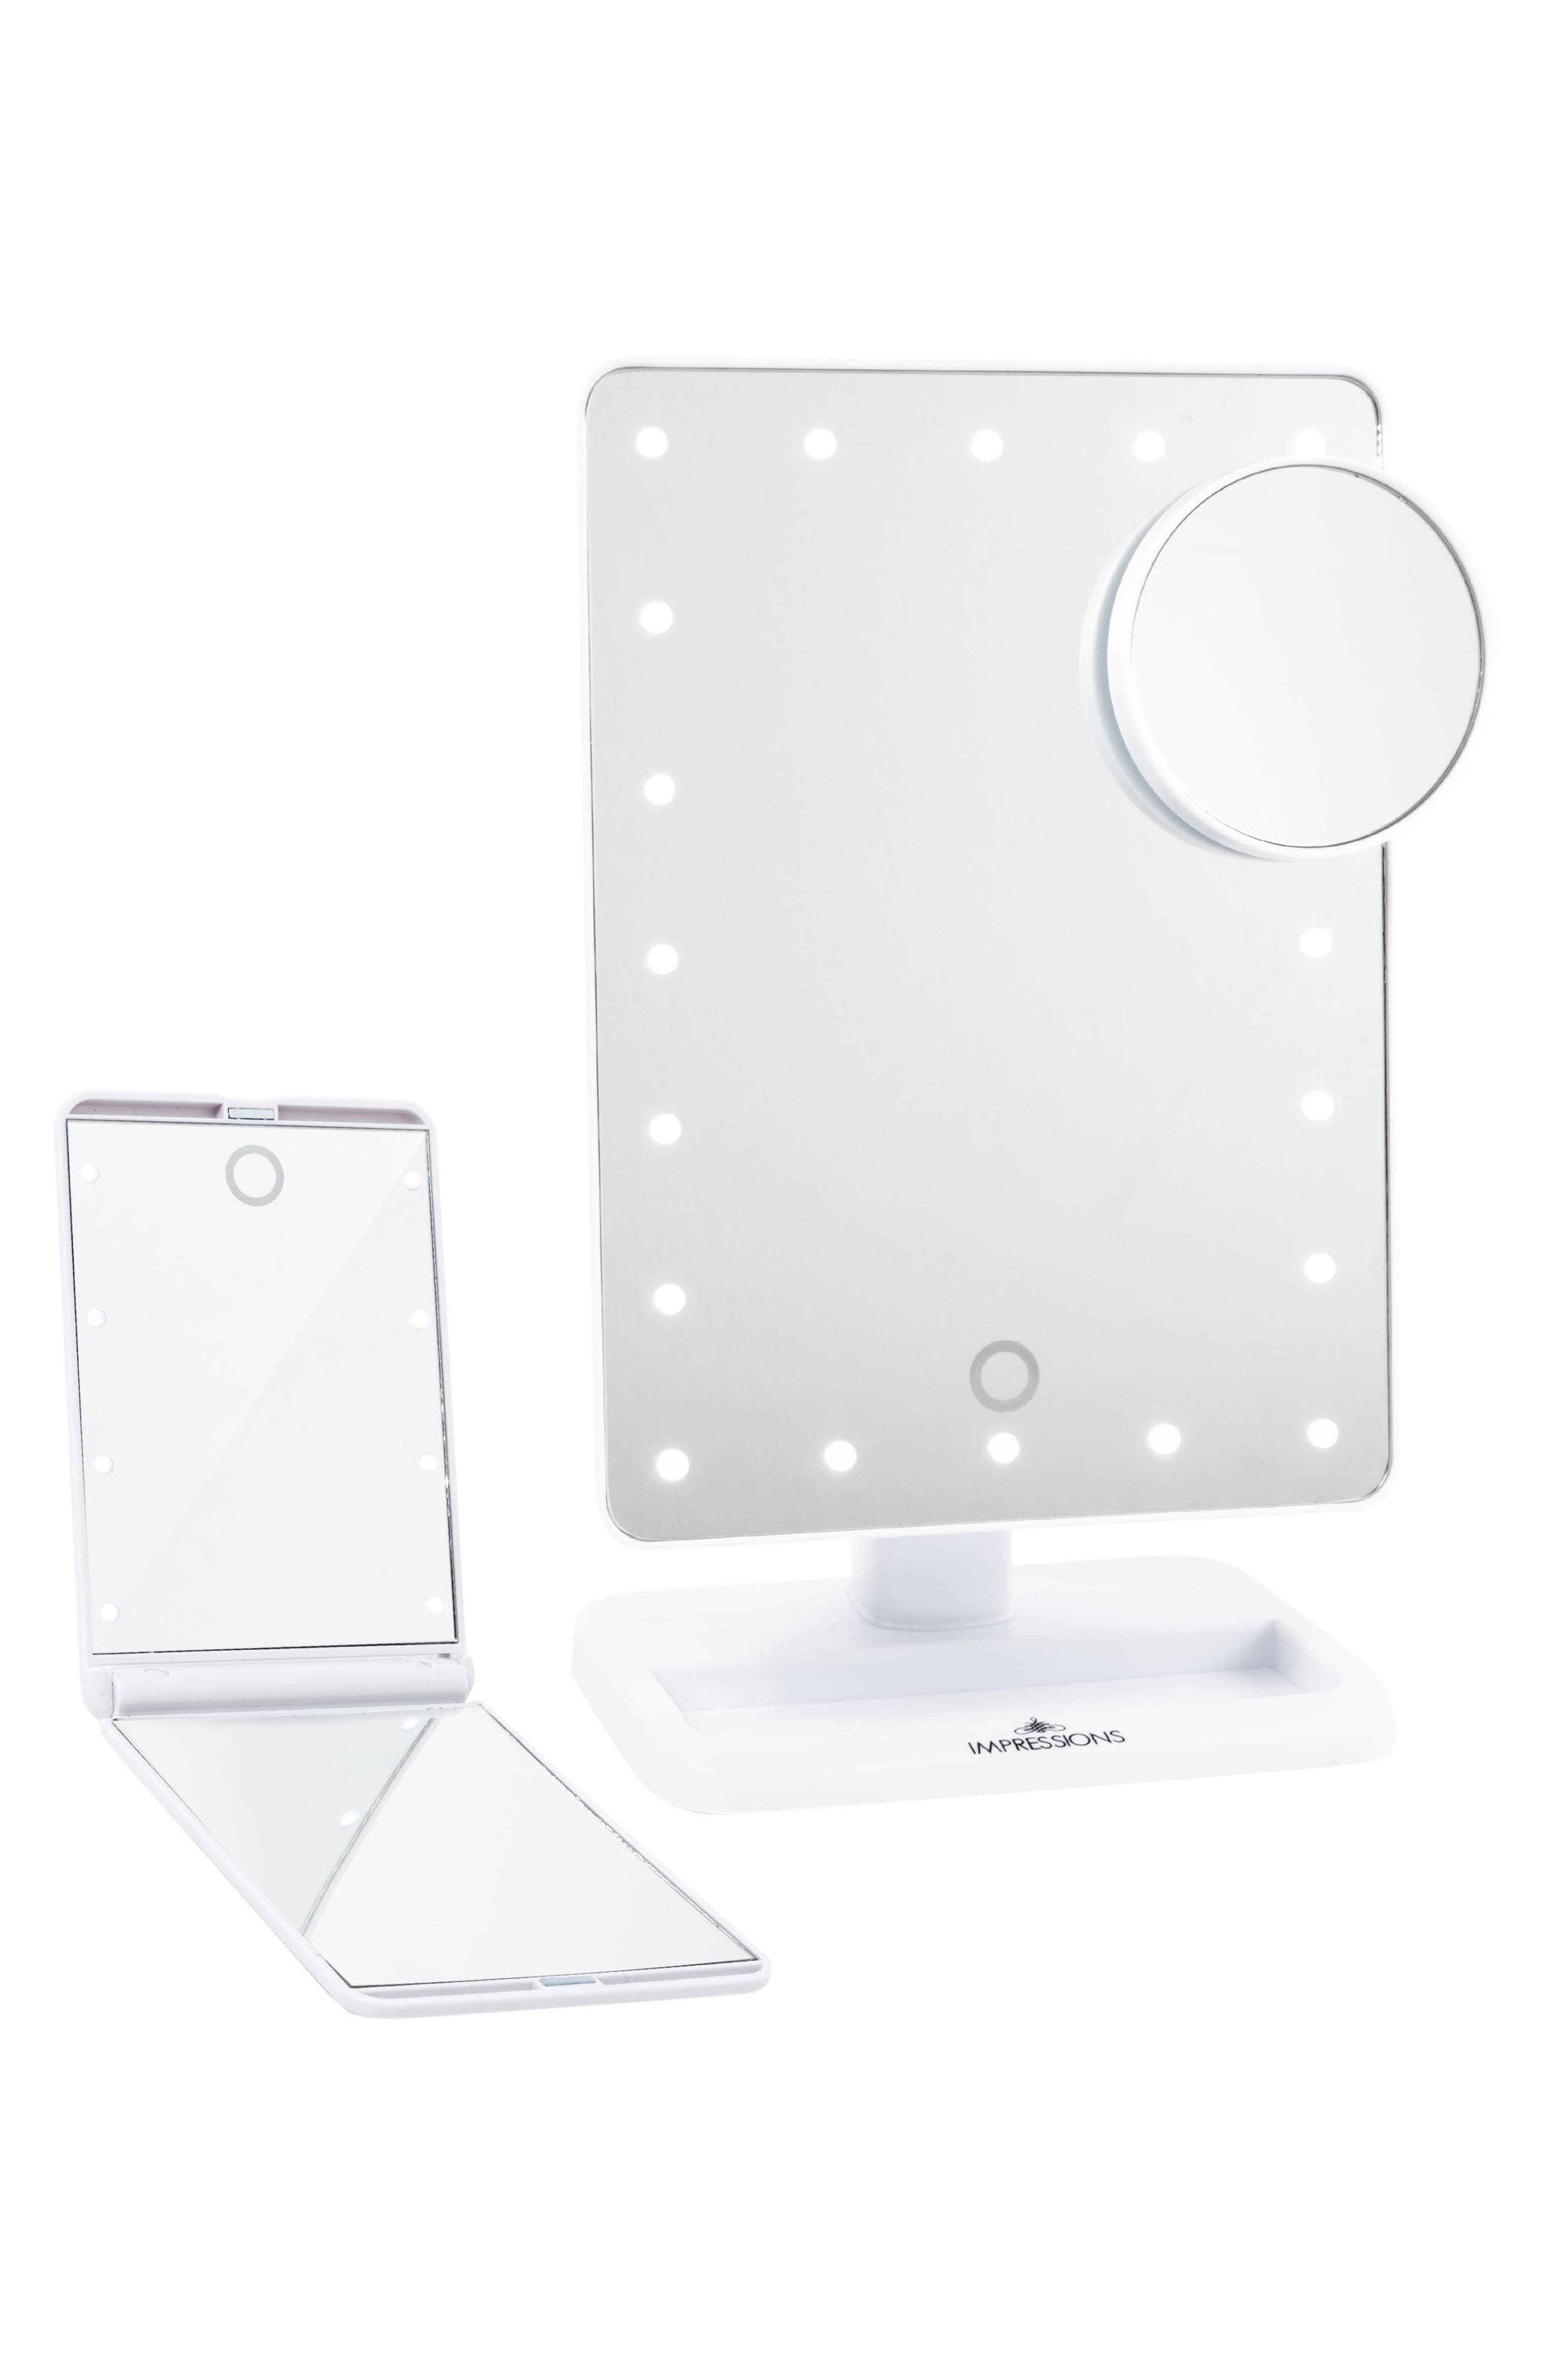 Alternate Image 1 Selected - Impressions Vanity Co. Touch XL Dimmable LED Makeup Mirror with Removable 5x Mirror & Compact Mirror